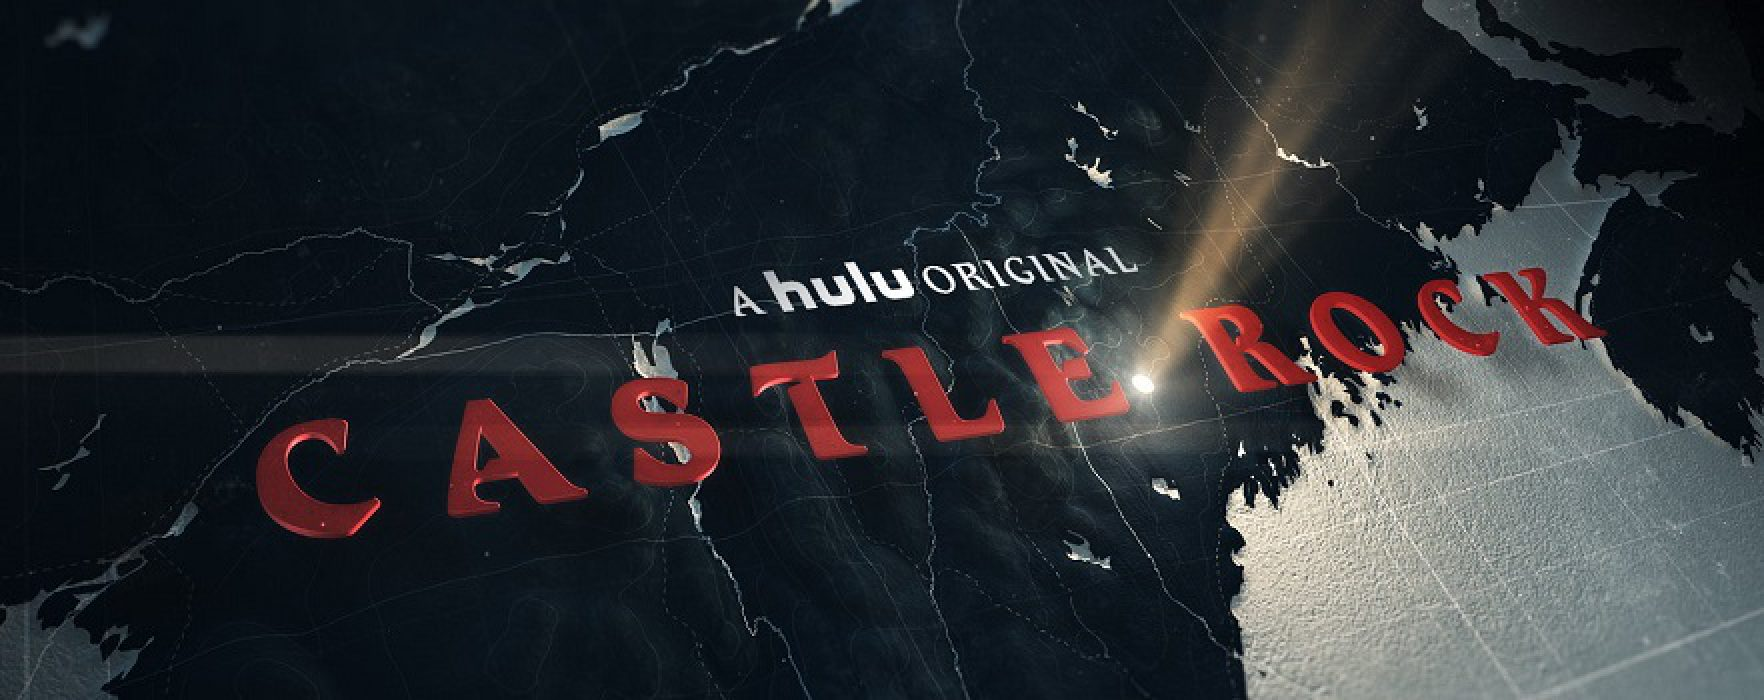 Castle Rock Series Builds on King's Weird World